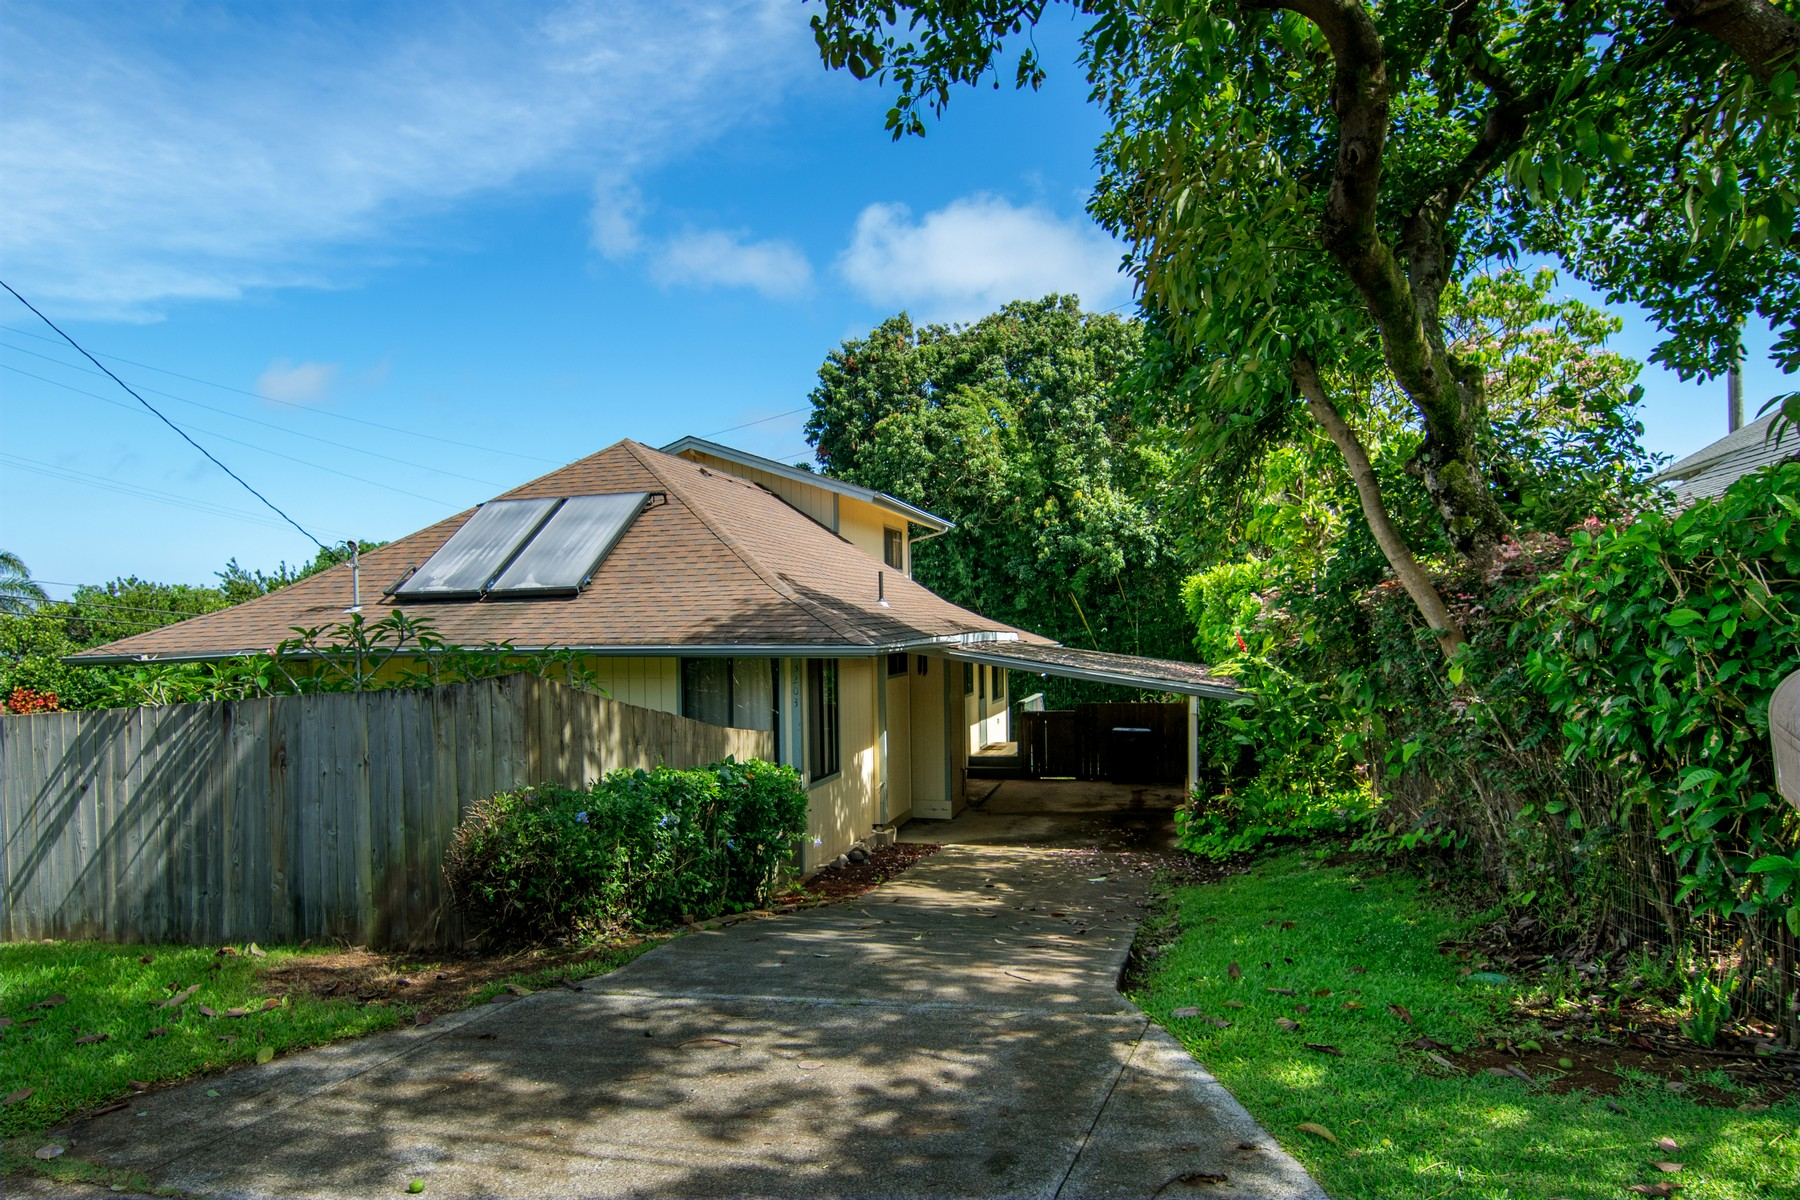 Single Family Home for Sale at Northshore Home - Live the Lifestyle 3203 Luahine Pl Haiku, Hawaii 96708 United States